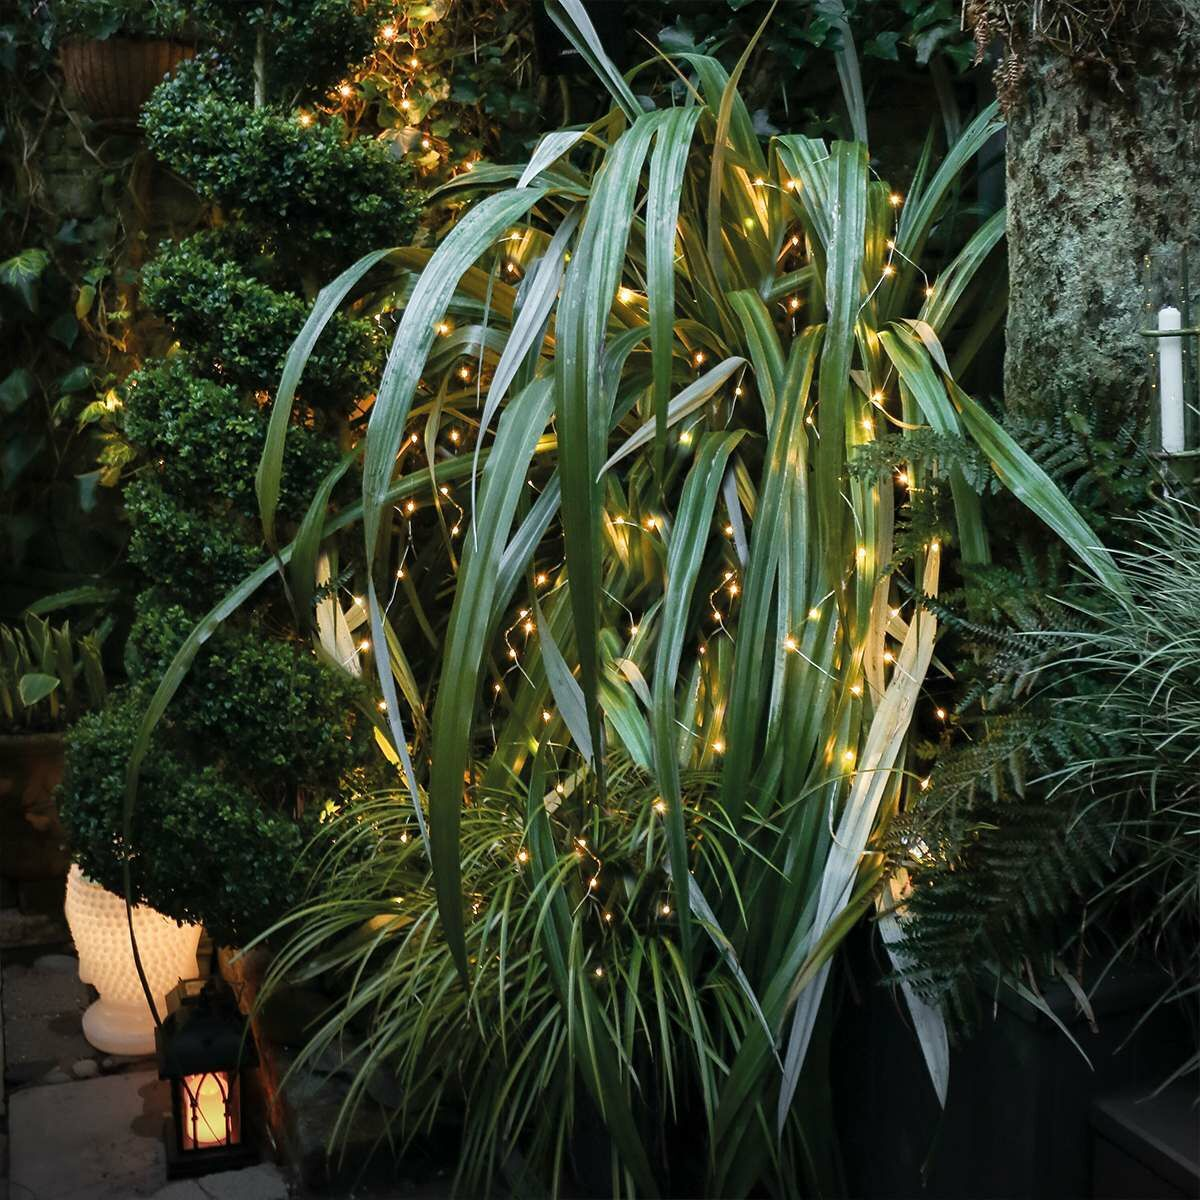 Outdoor Plug In Micro Fairy Lights on Silver Wire, 50 Warm White LEDs